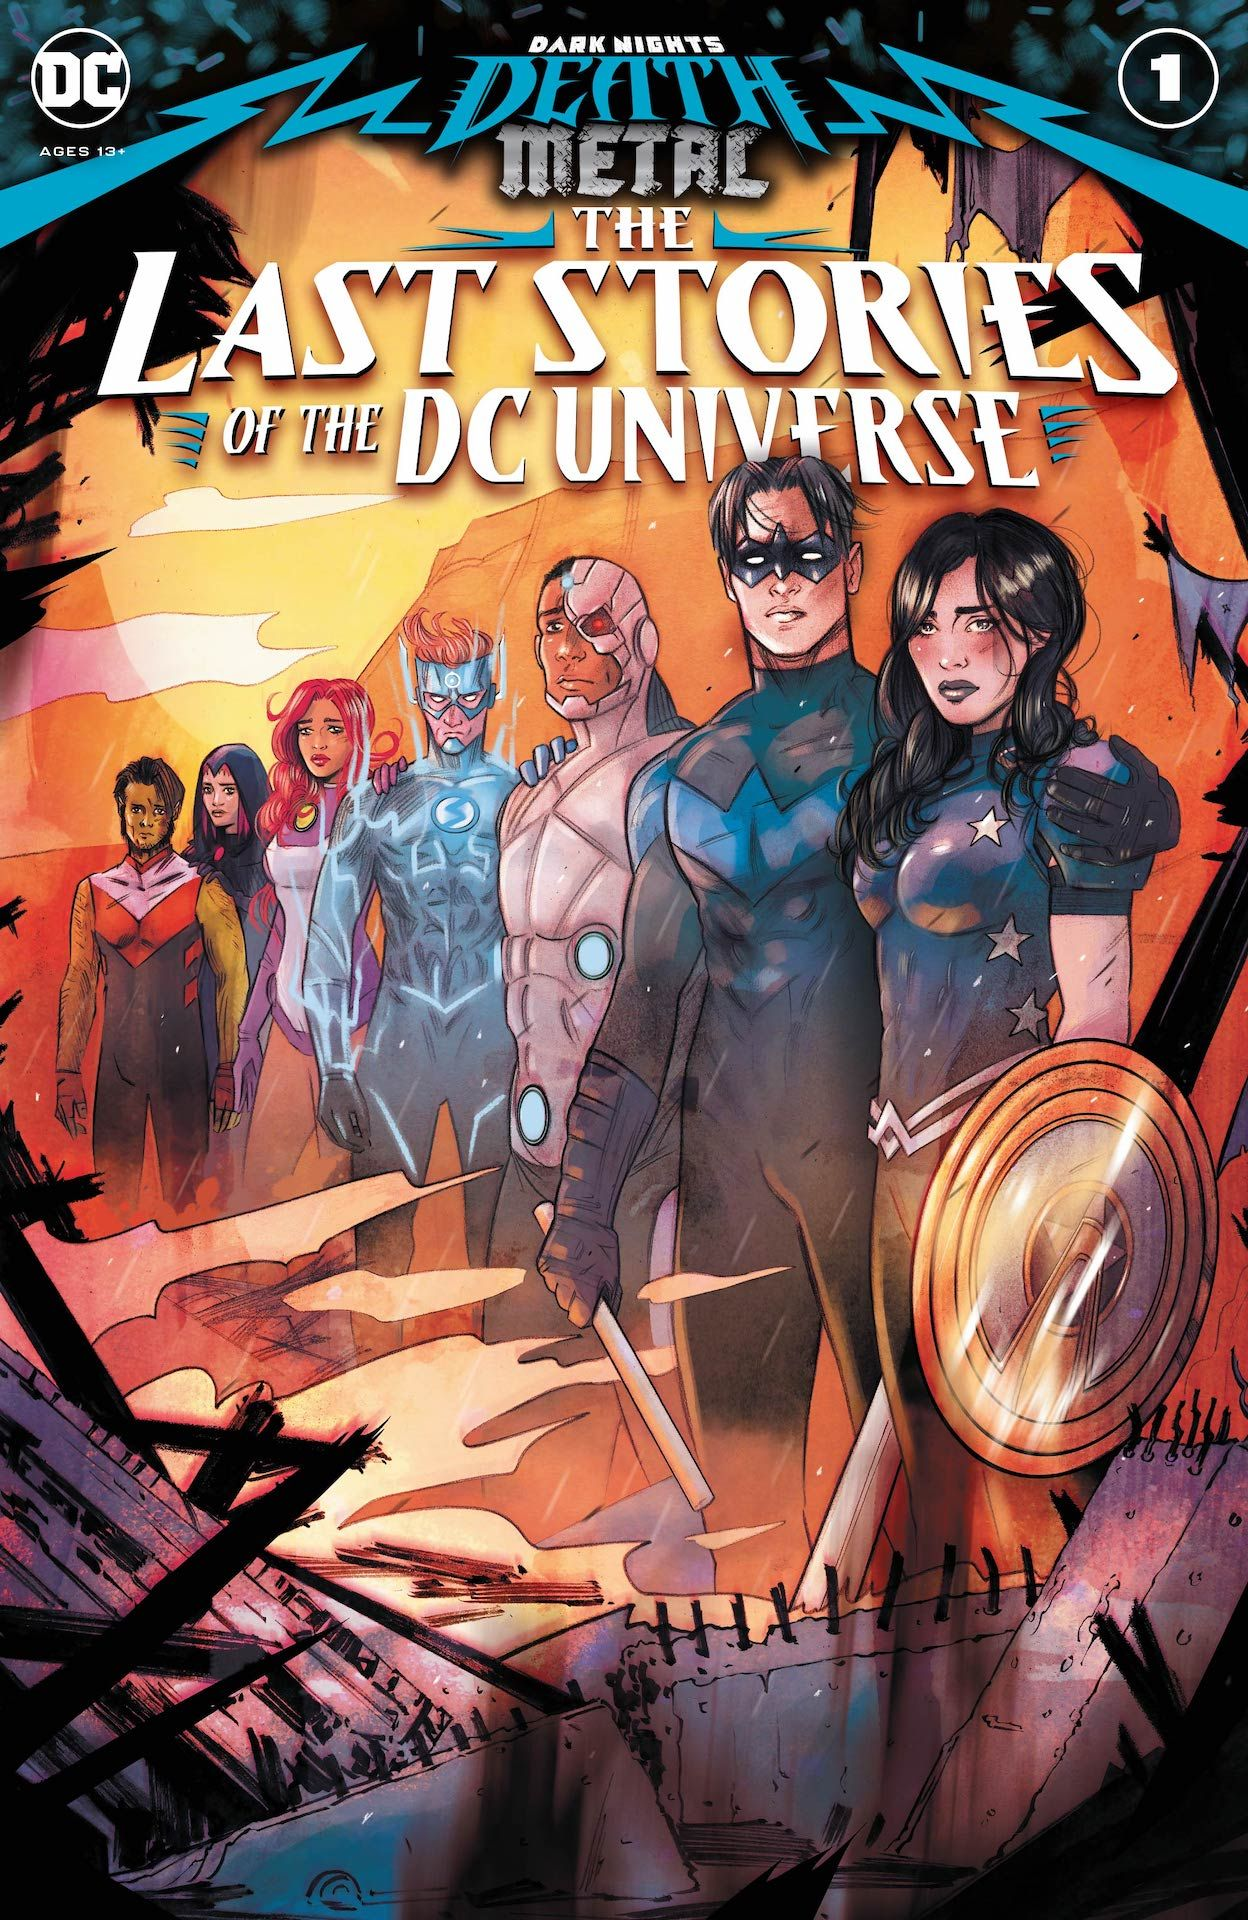 Dark Nights: Death Metal: The Last Stories of the Universe #1 preview